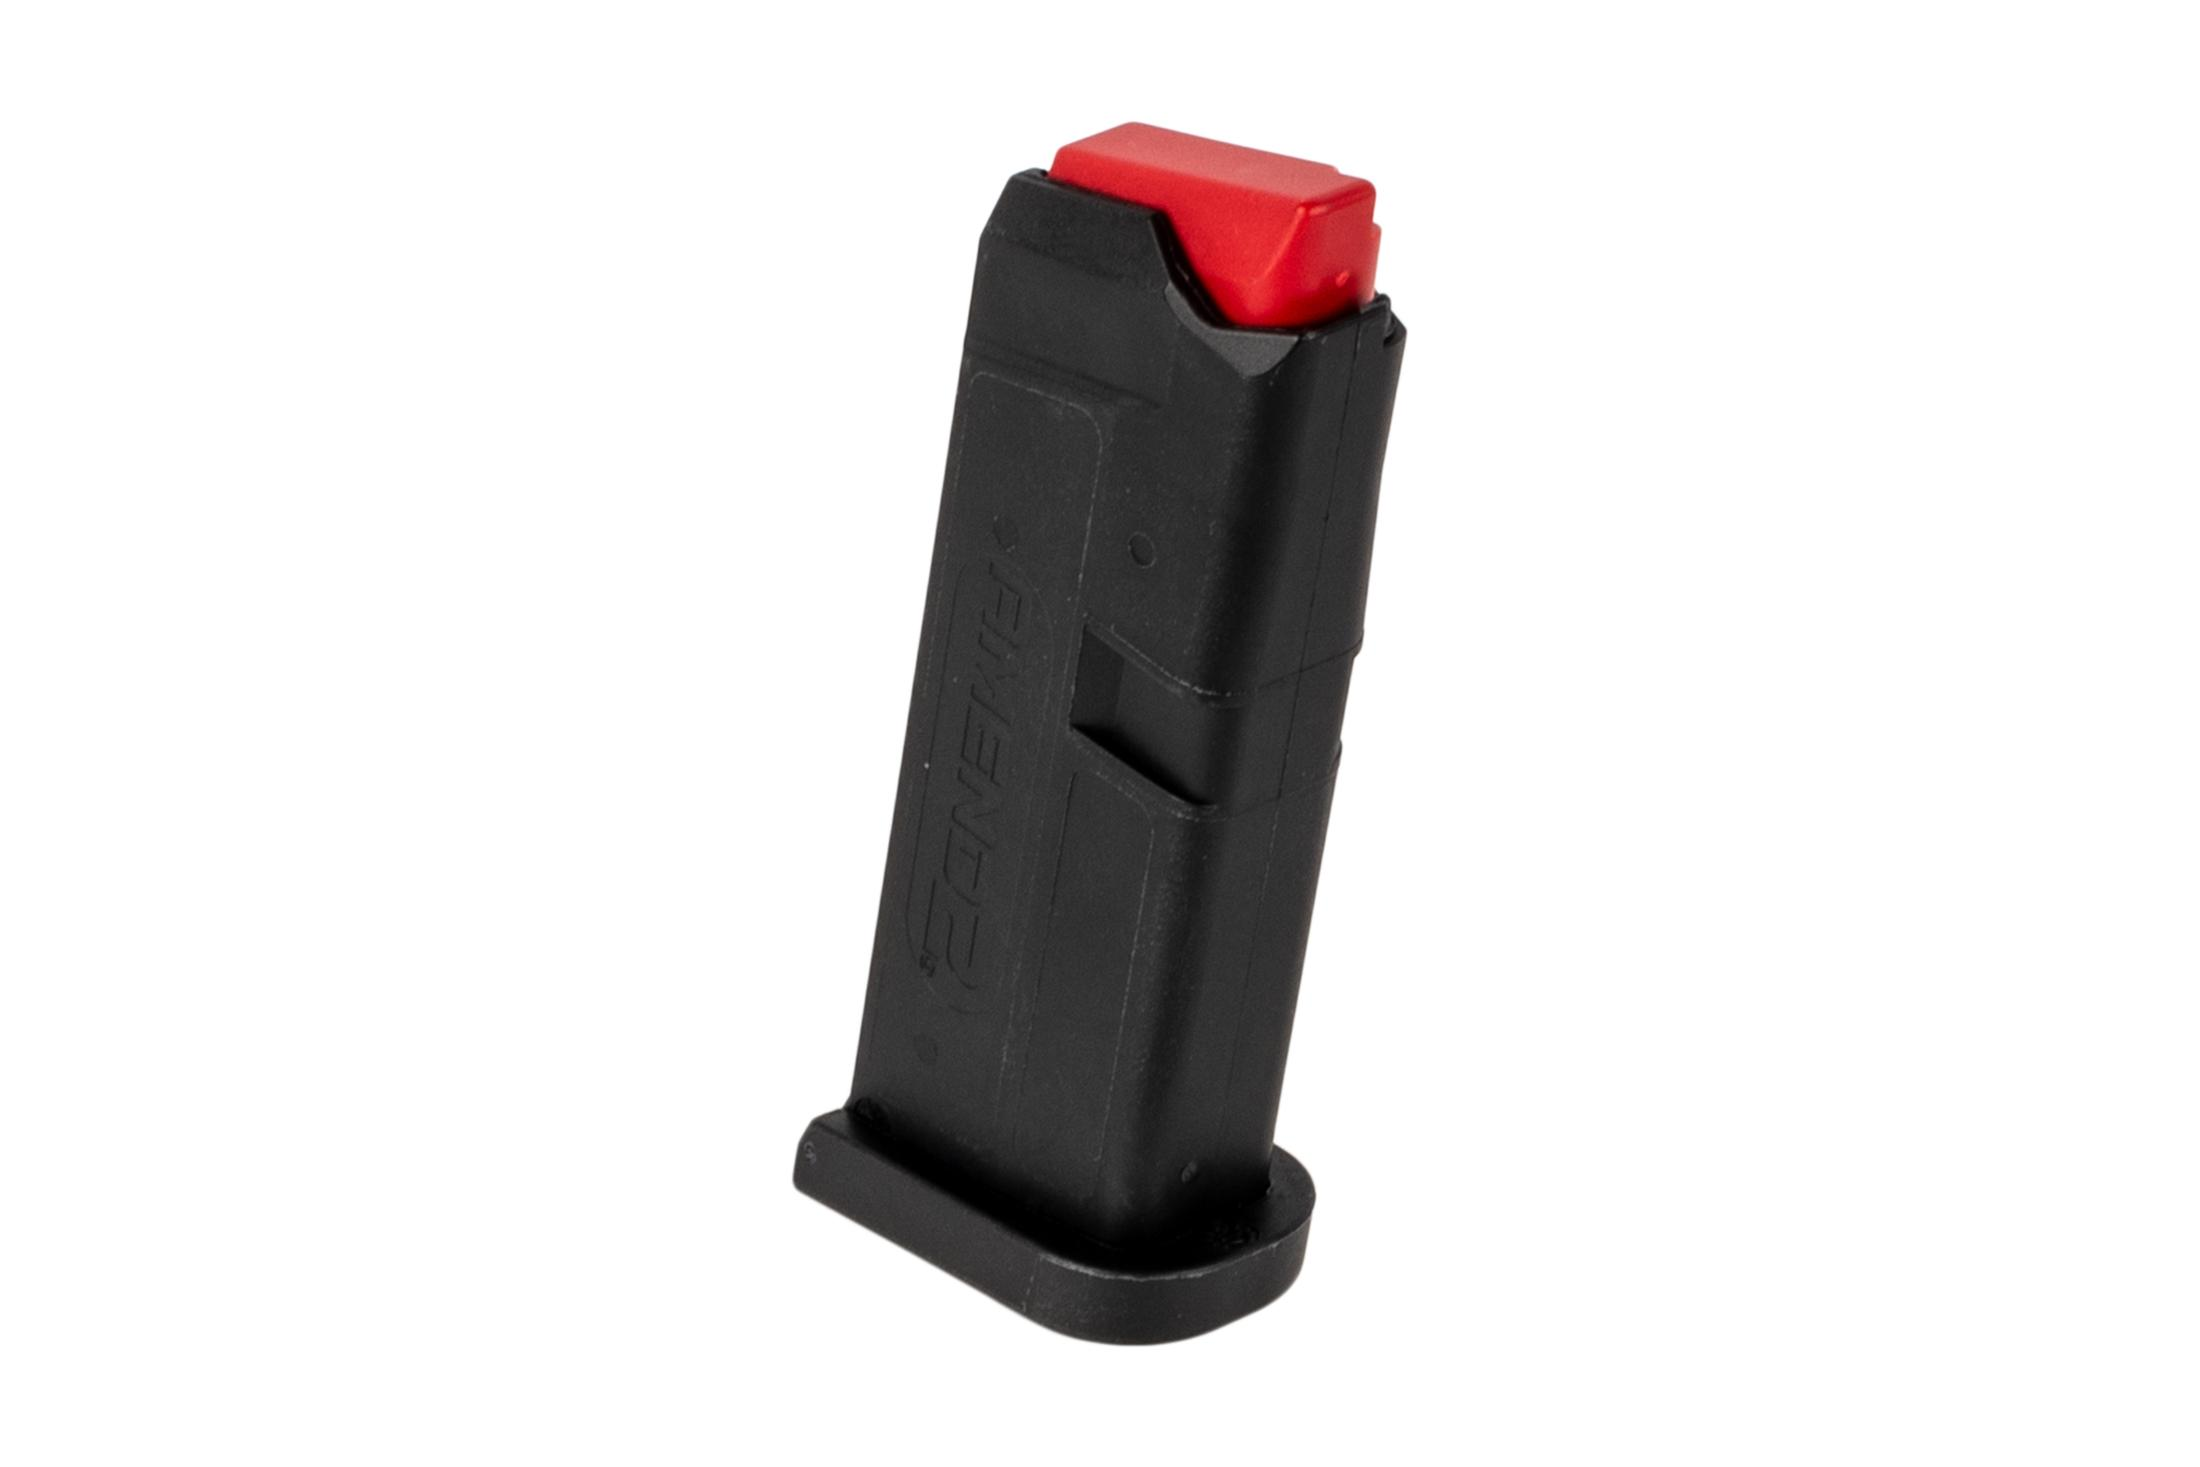 Amend2 A2-42 Glock 42 magazine holds 6 rounds of .380 acp